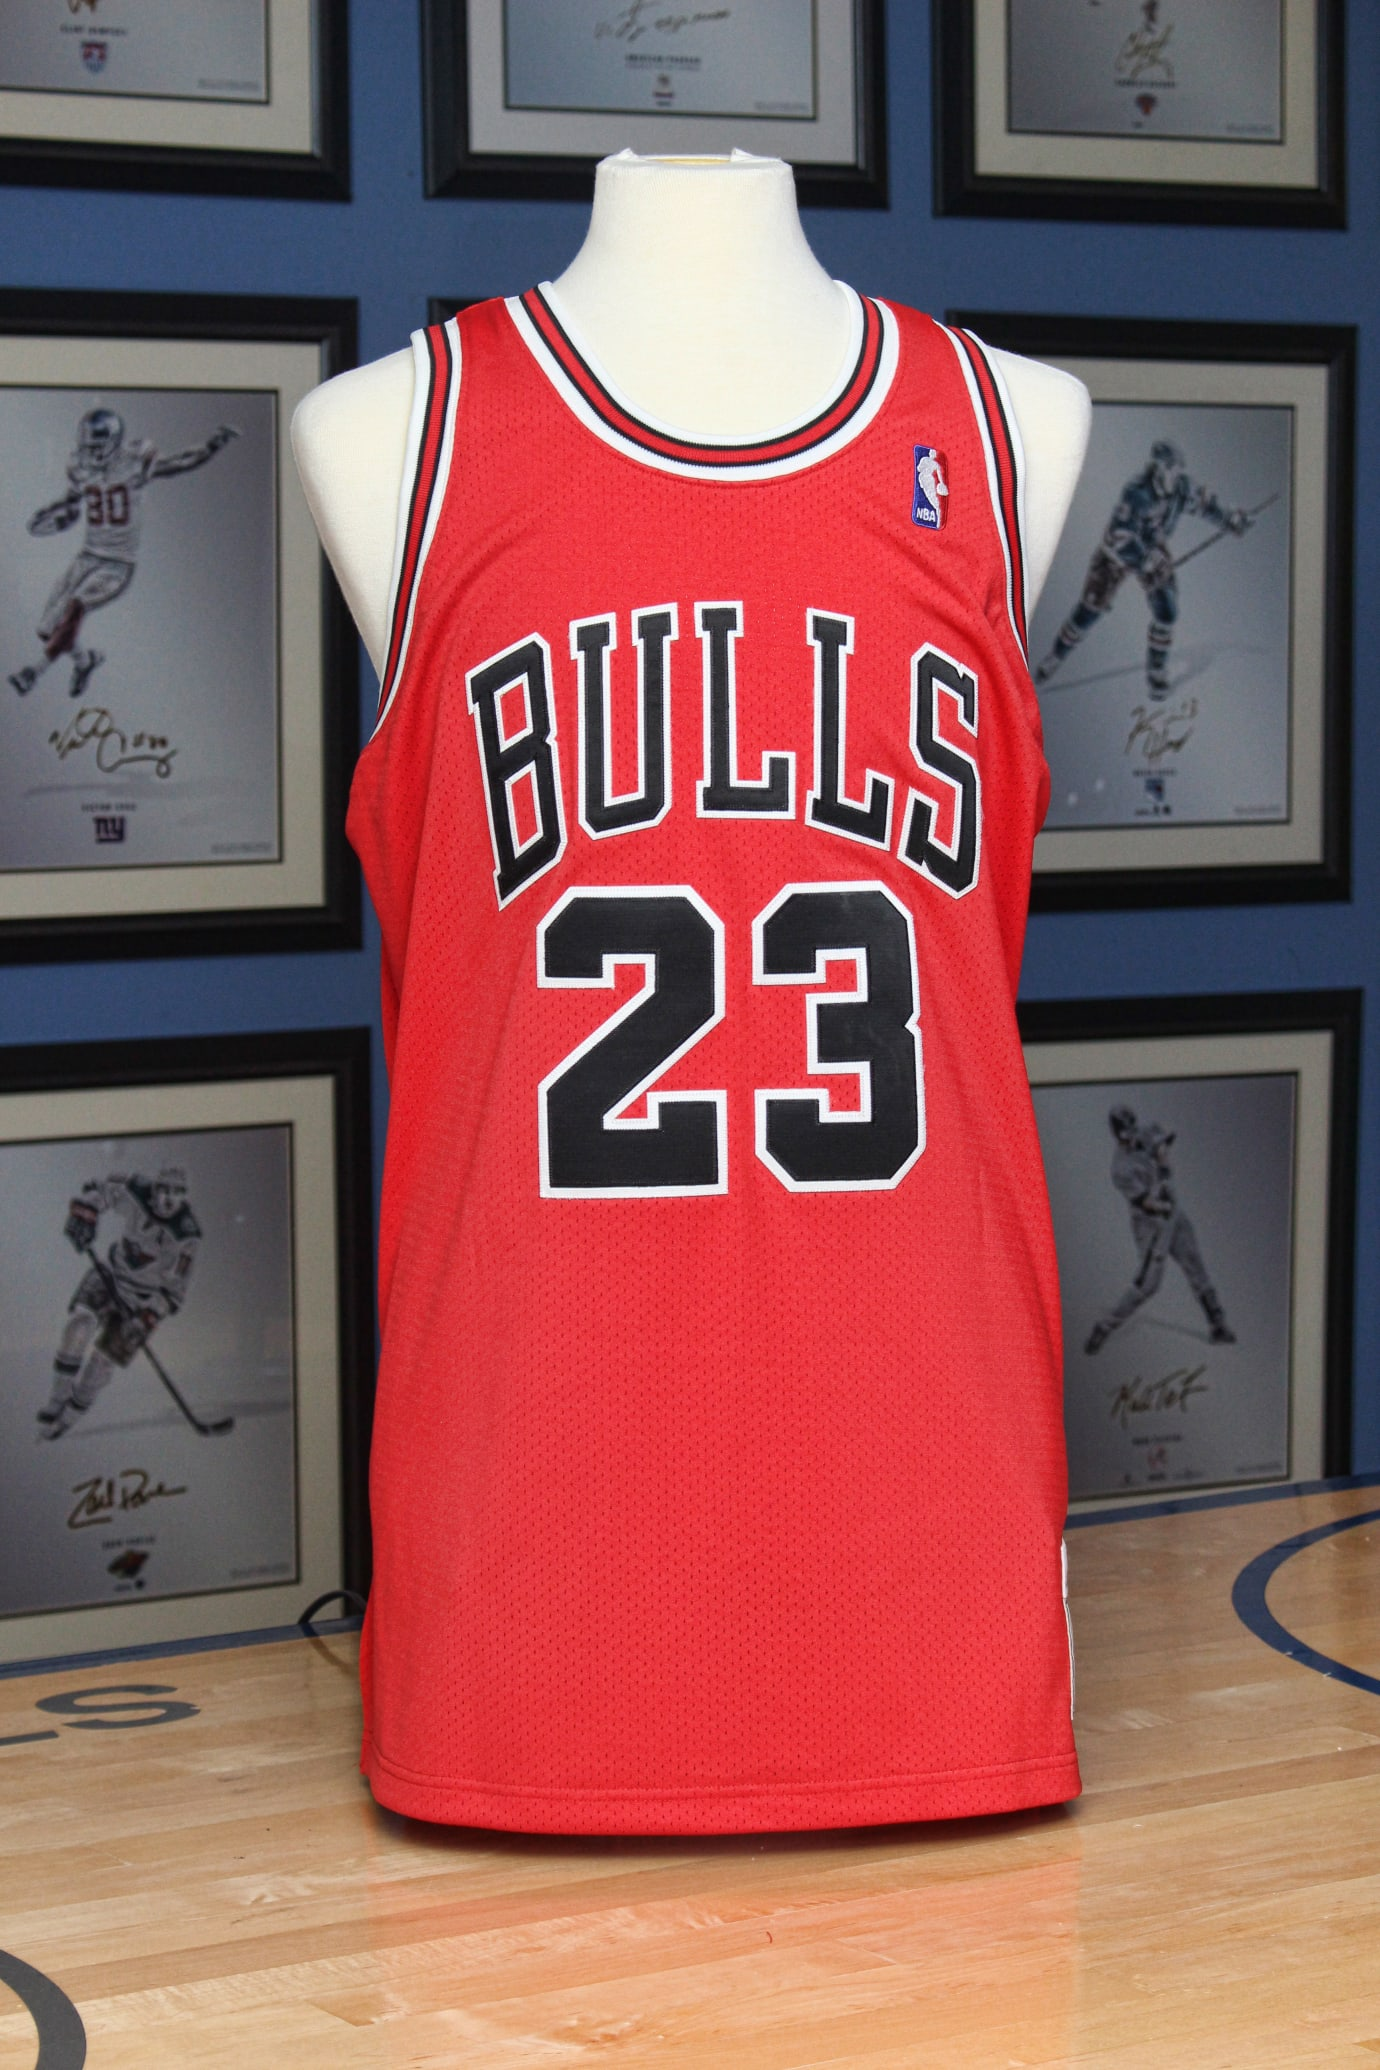 07e749480c7fa How to Win This Signed Michael Jordan Jersey | Sole Collector